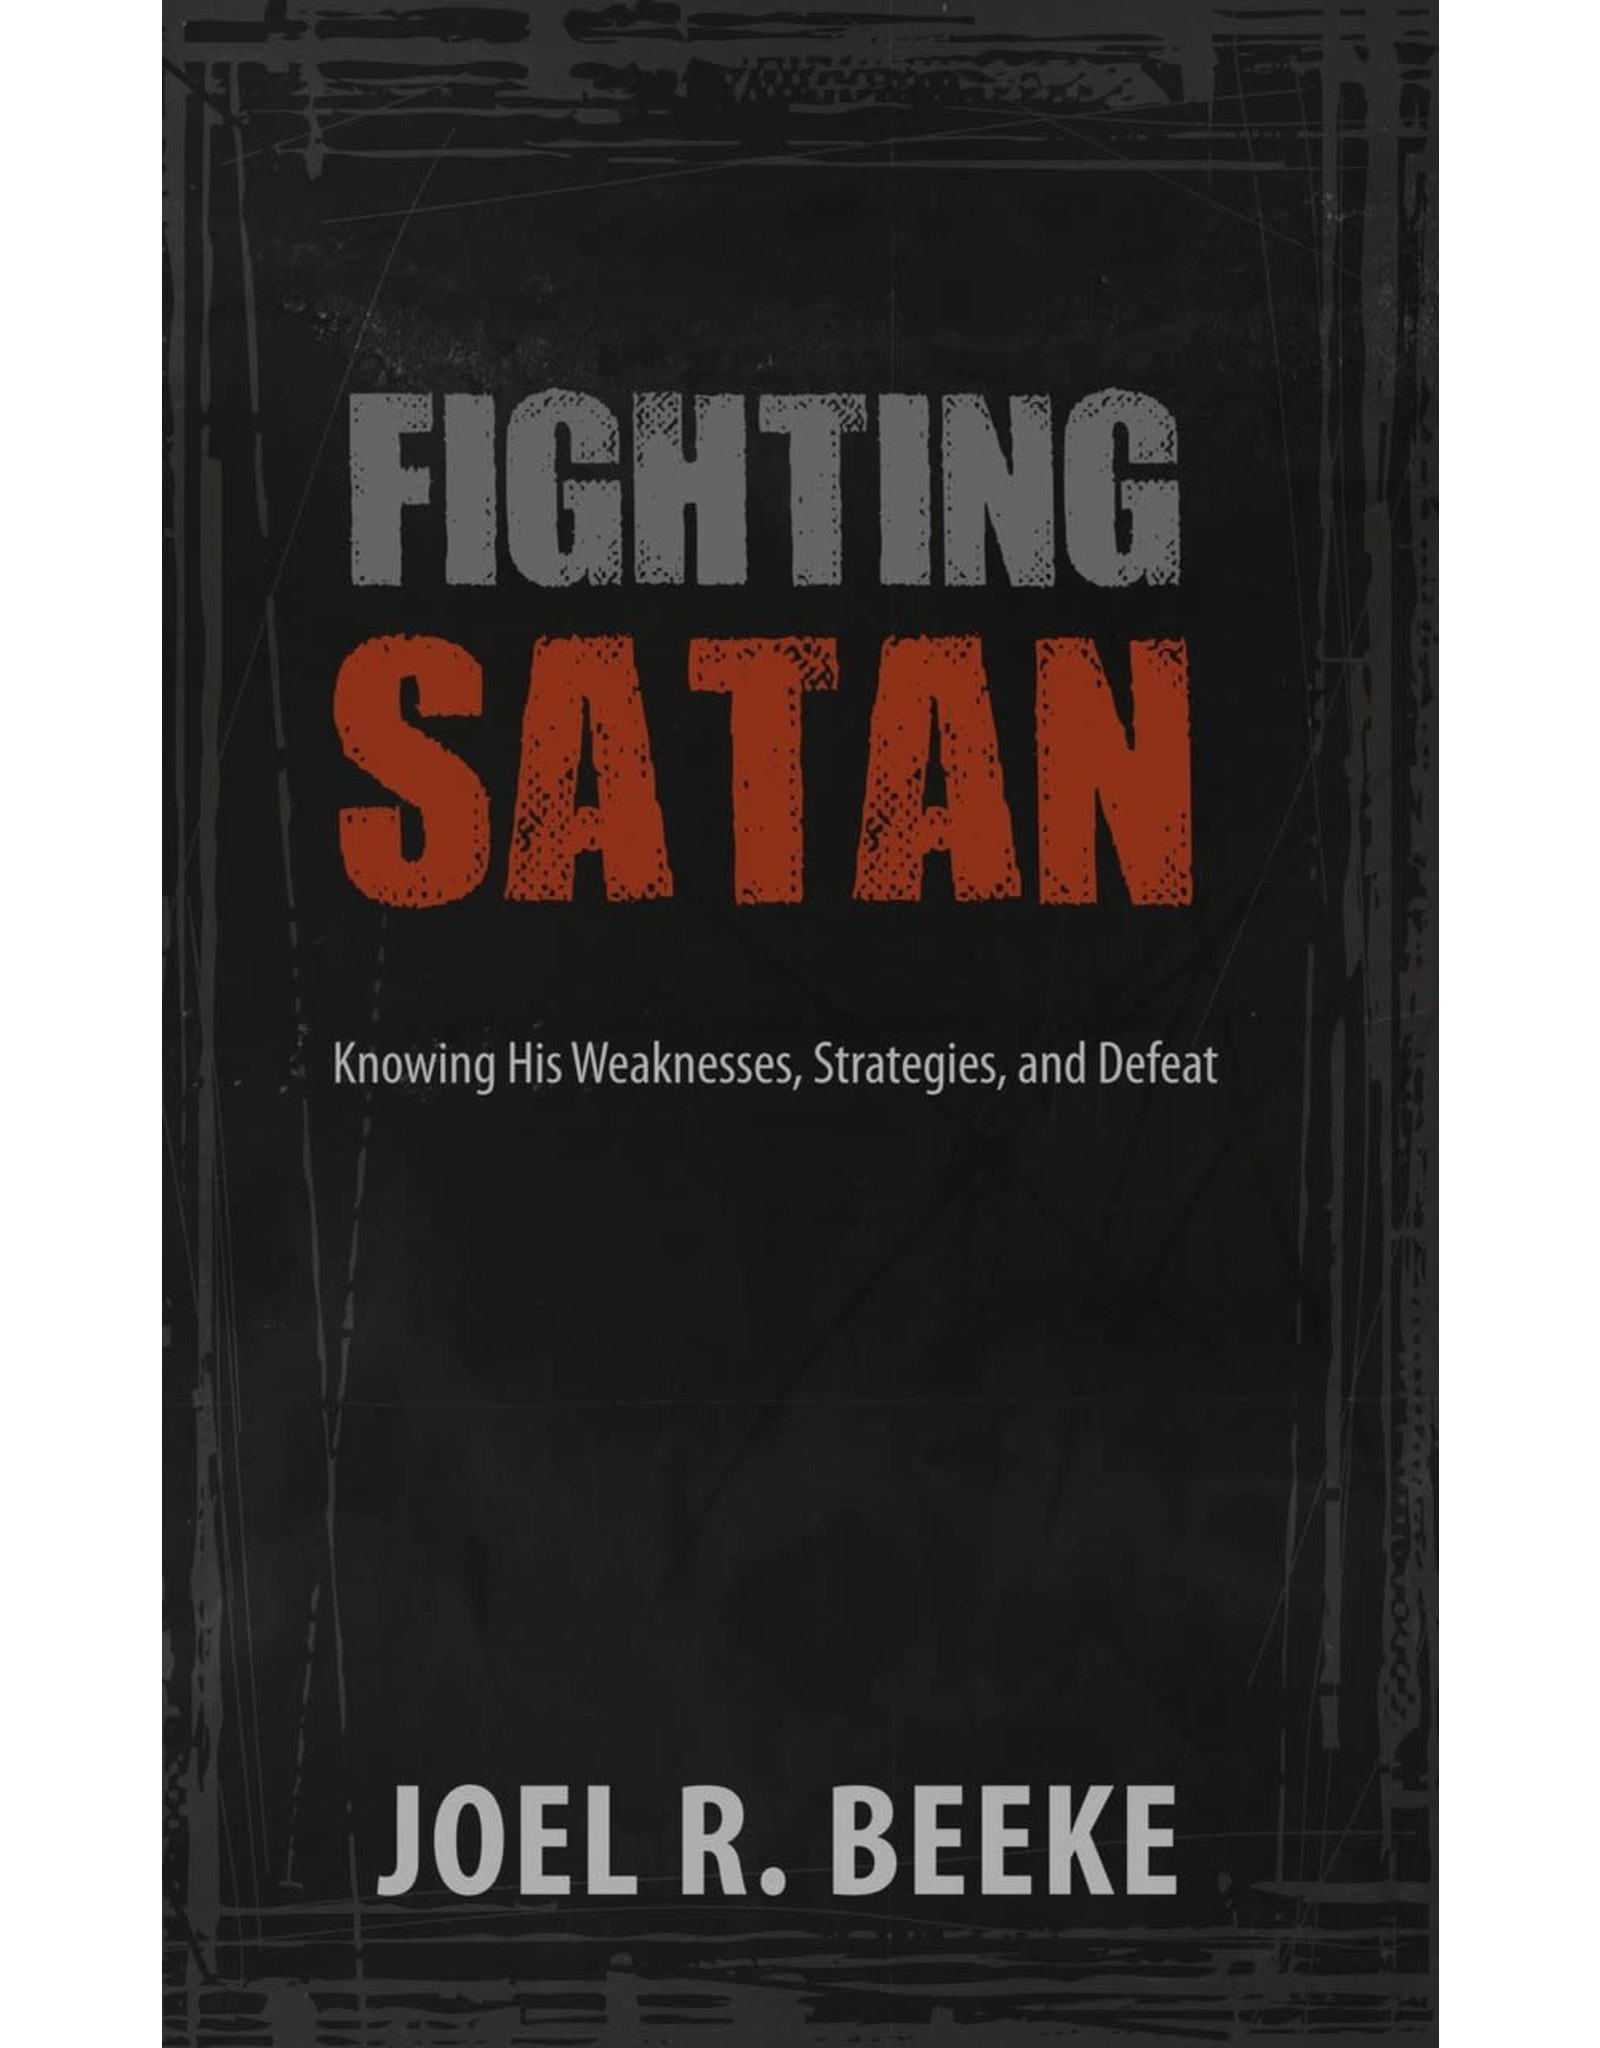 Reformation Heritage Books (RHB) Fighting Satan: Knowing His Weaknesses, Strategies, and Defeat